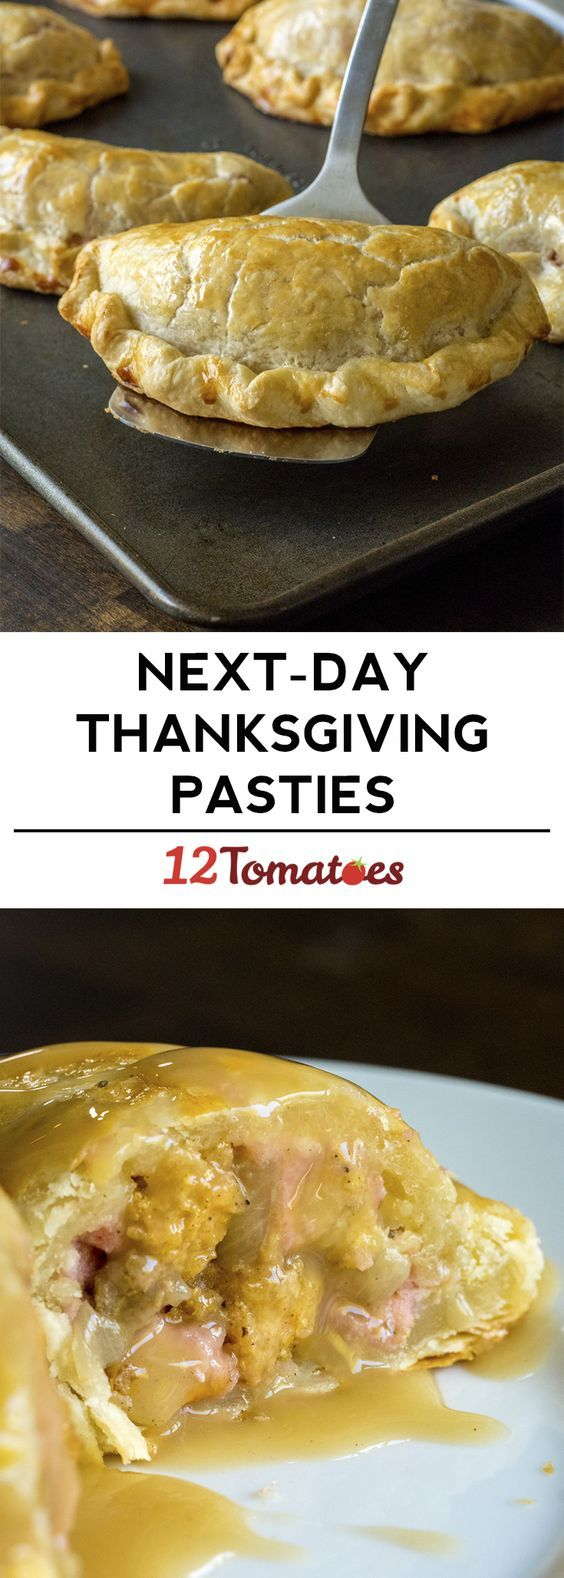 Thanksgiving Pasties! The tastiest way to eat your leftovers.